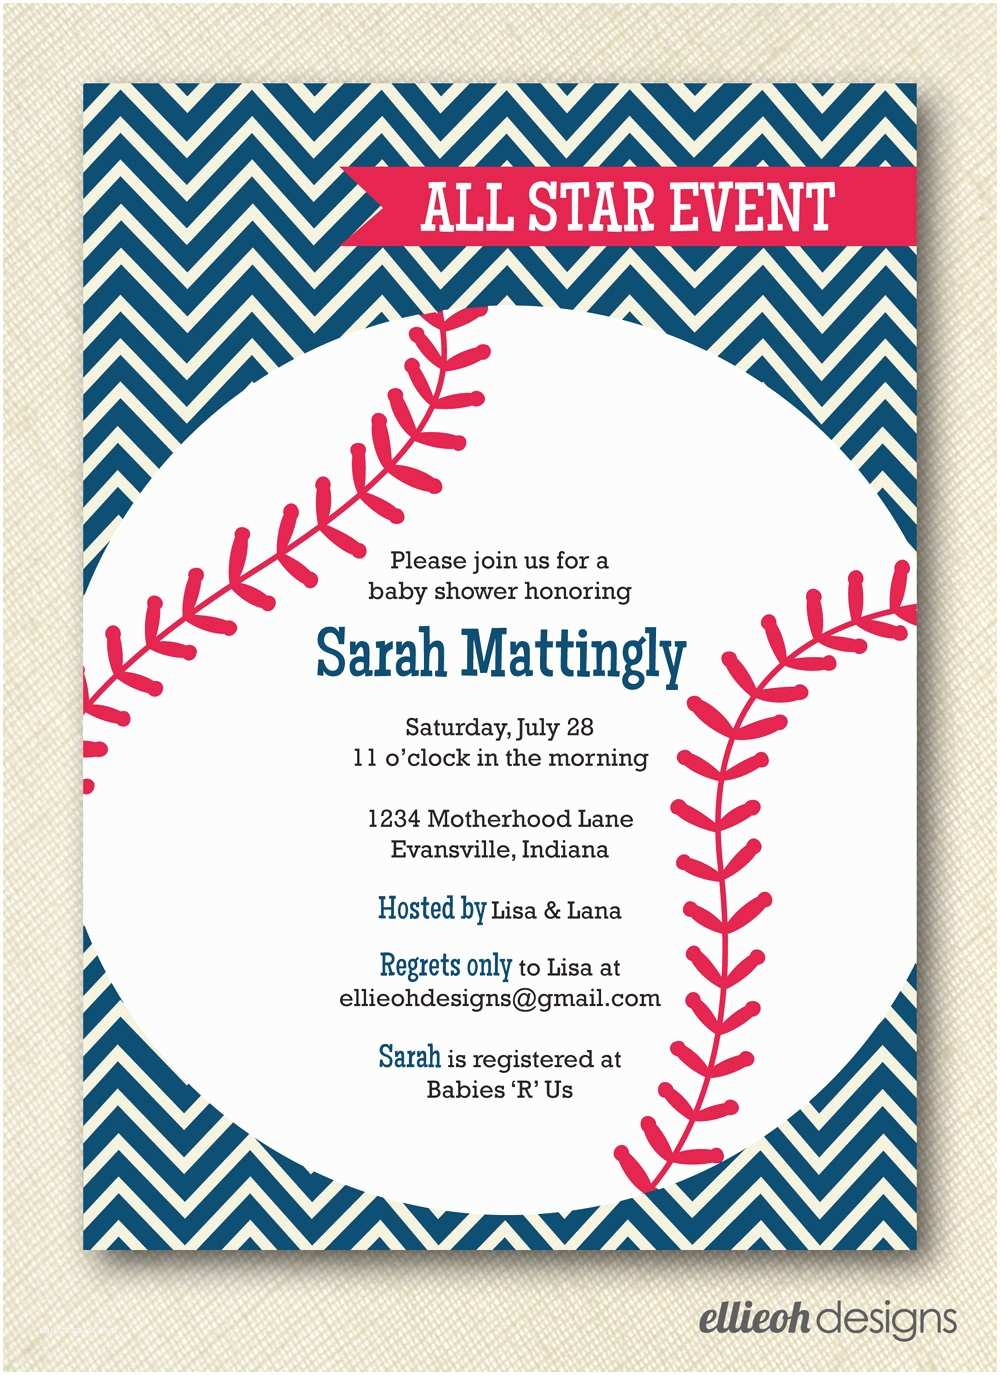 Custom Made Baby Shower Invitations Template Handmade Baseball Baby Shower Invitations